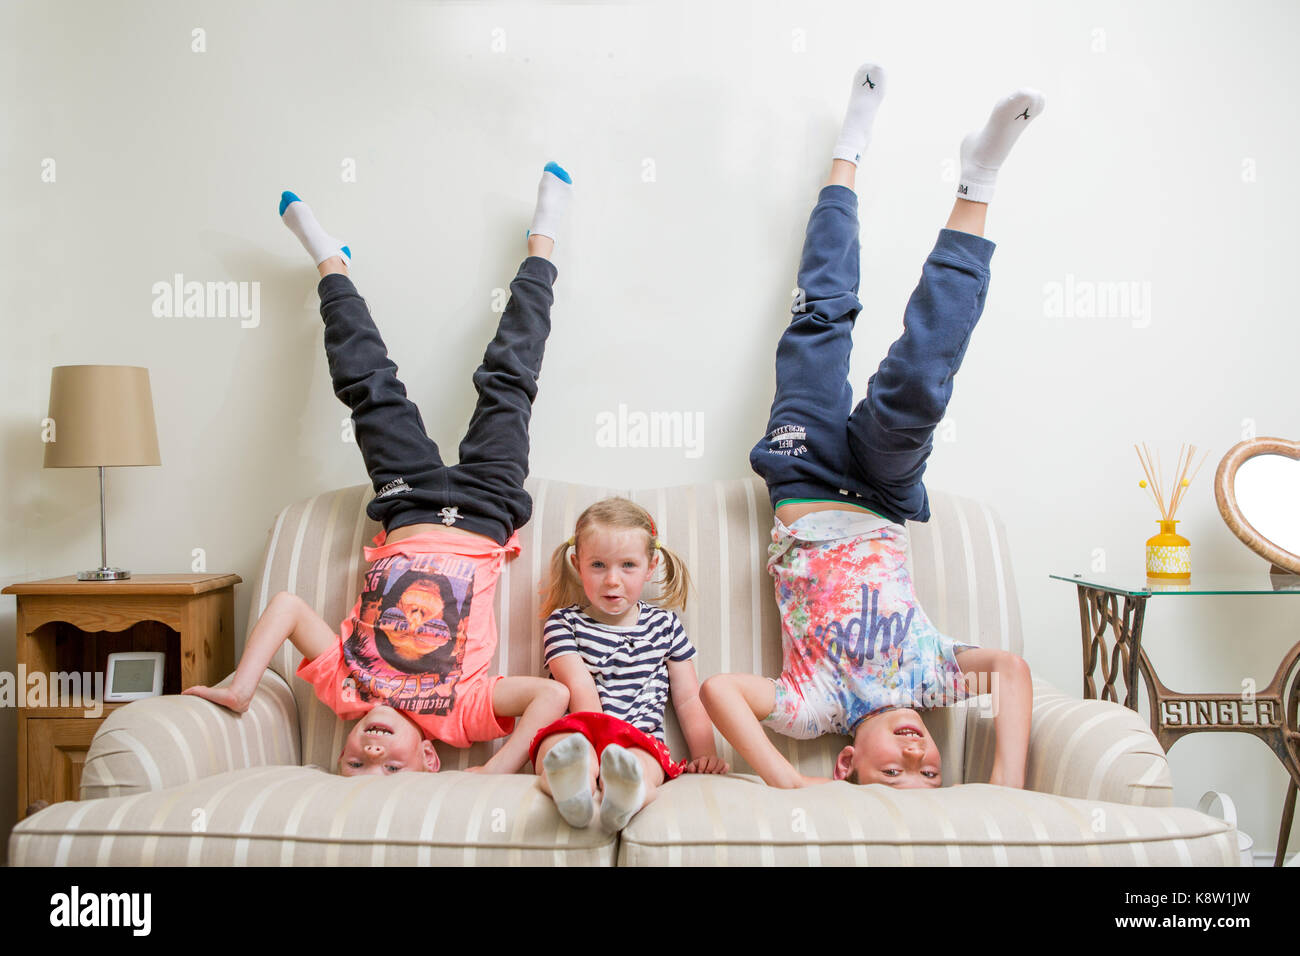 kids doing headstand on the sofa - Stock Image